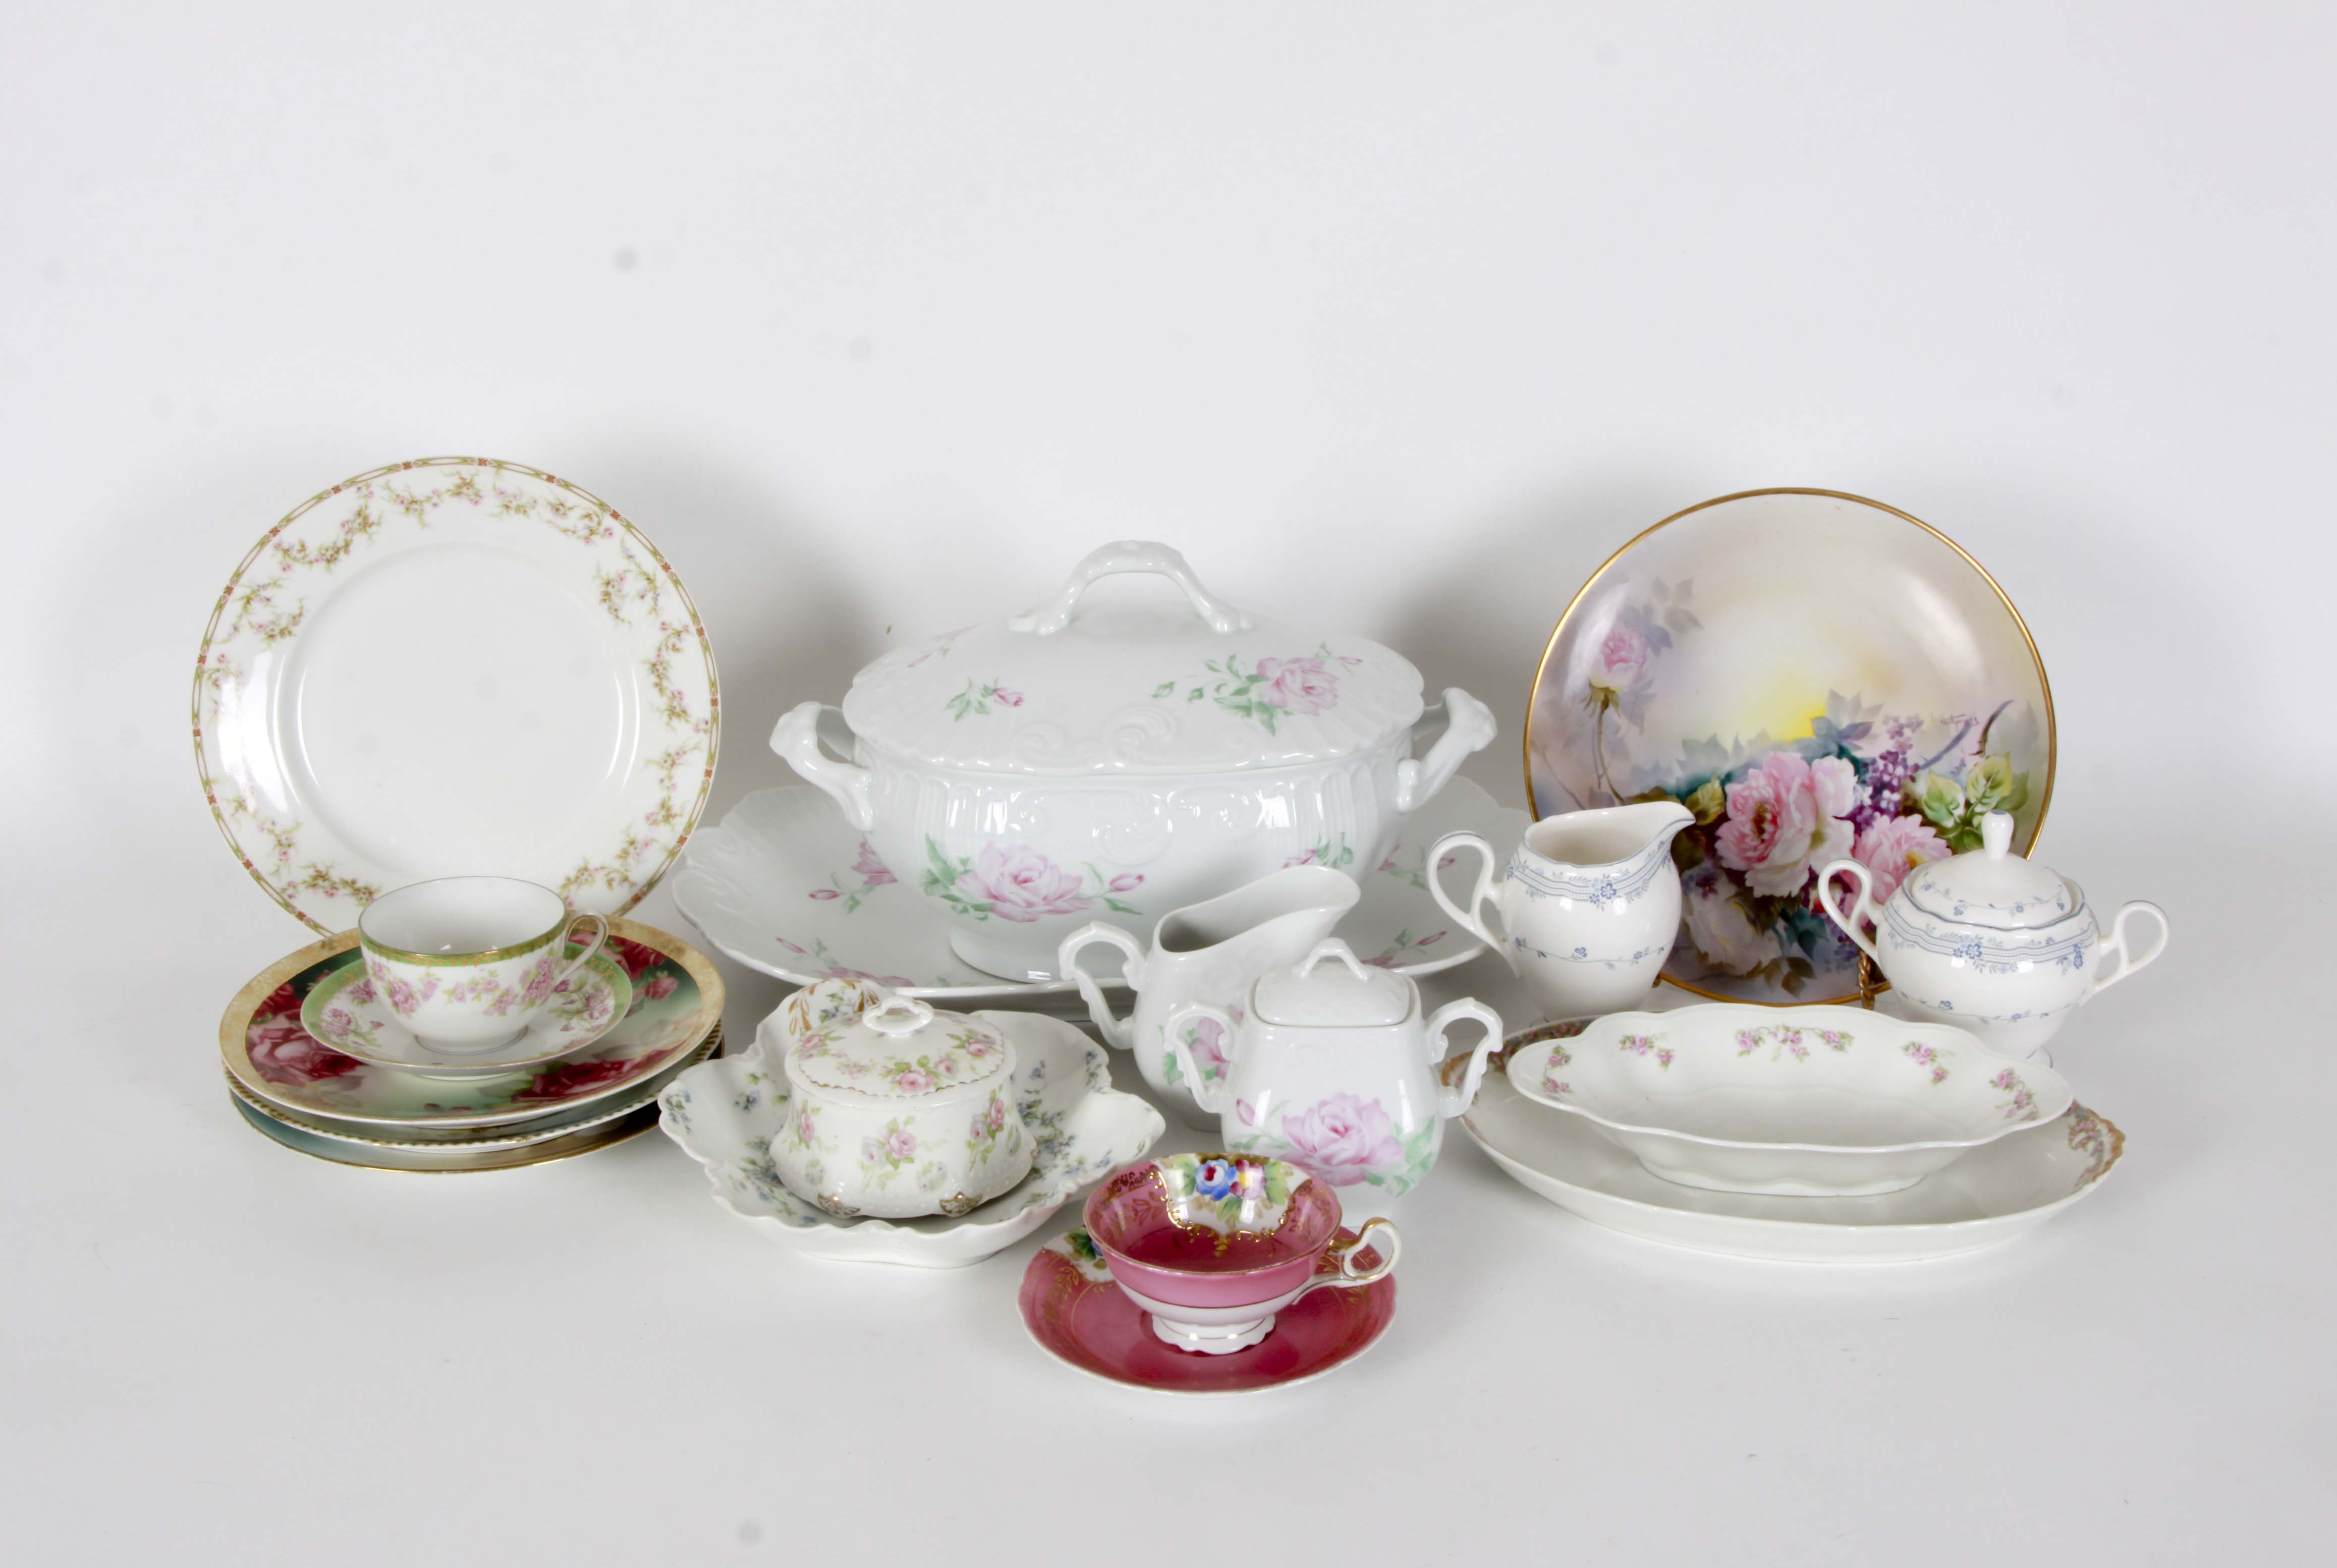 Floral Tableware Collection including RS Germany and Limoges